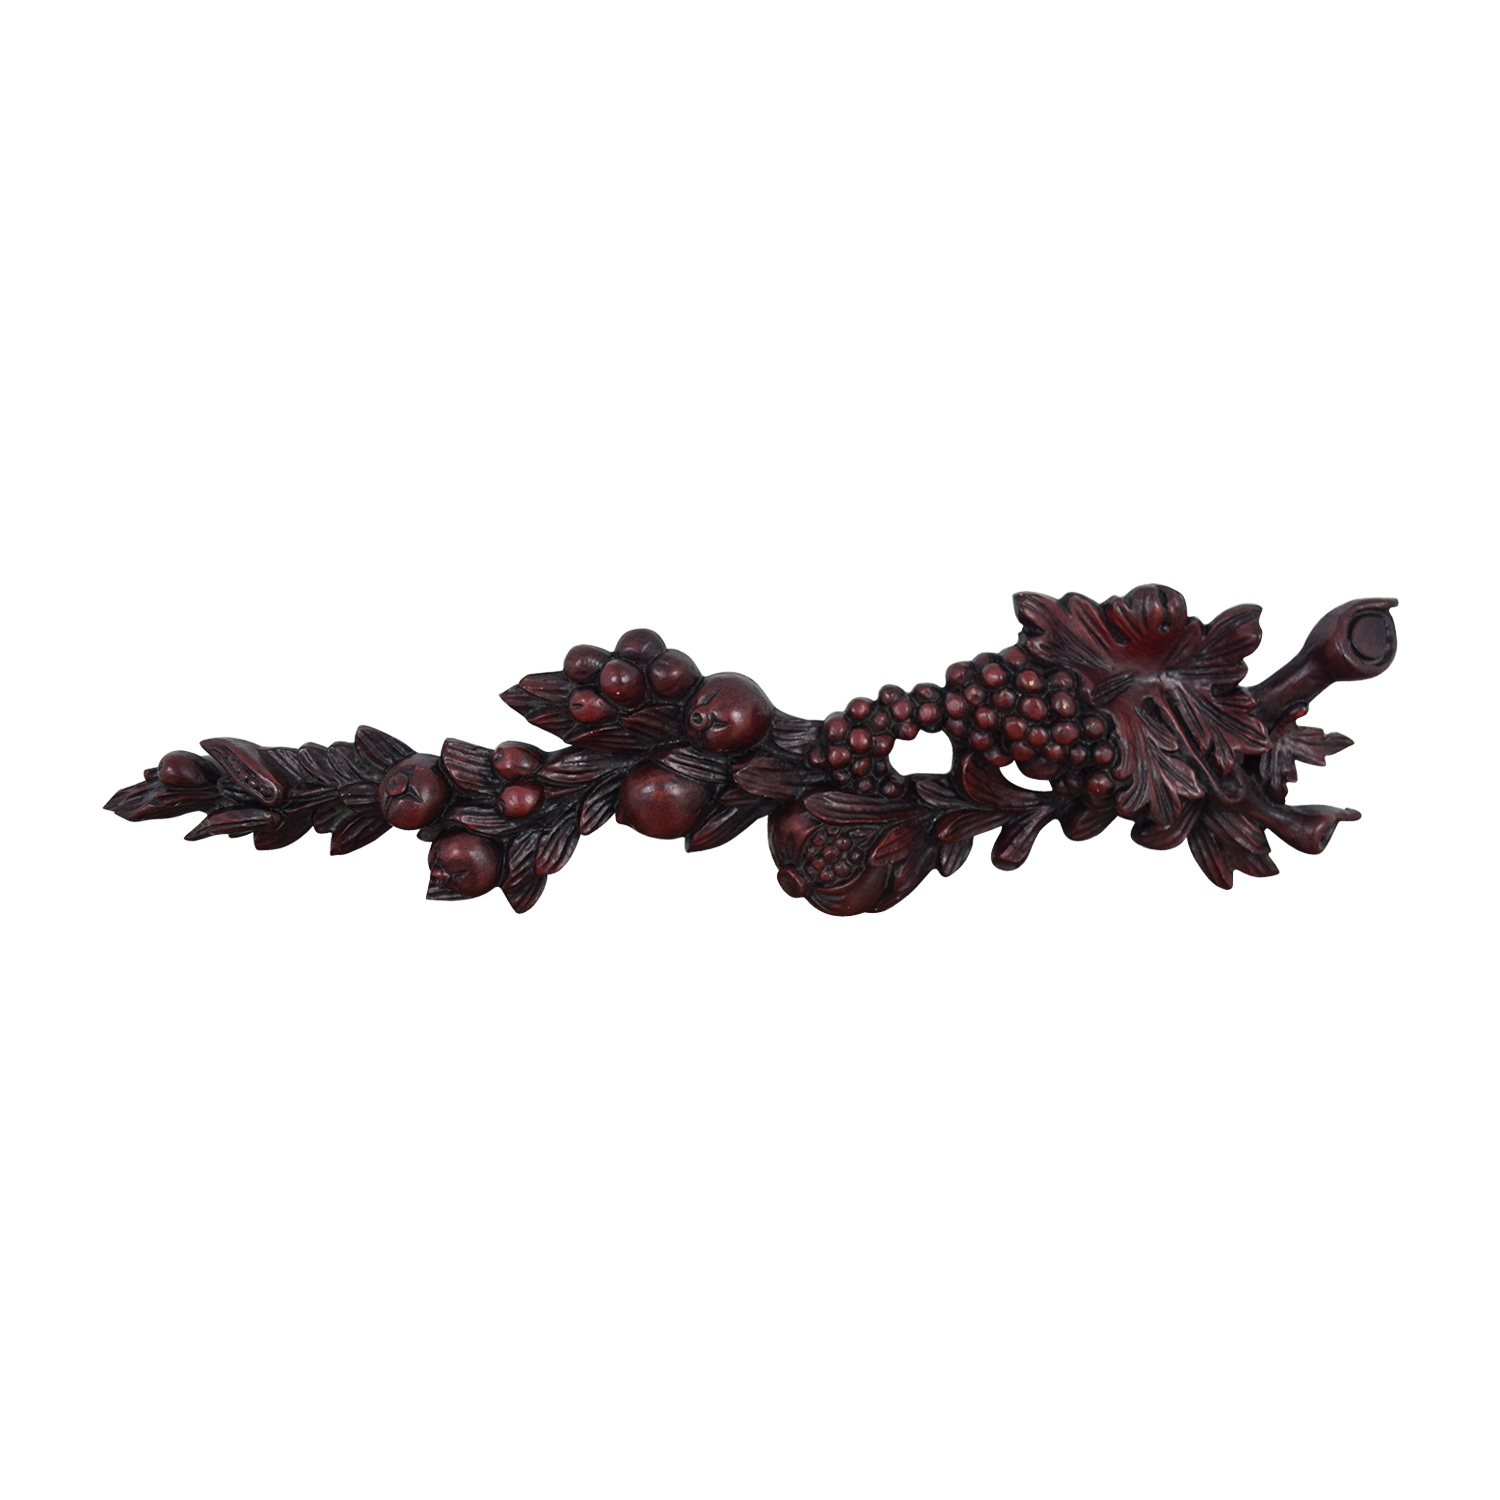 buy Burgundy Carved Wood Italian Fruit Plaque online